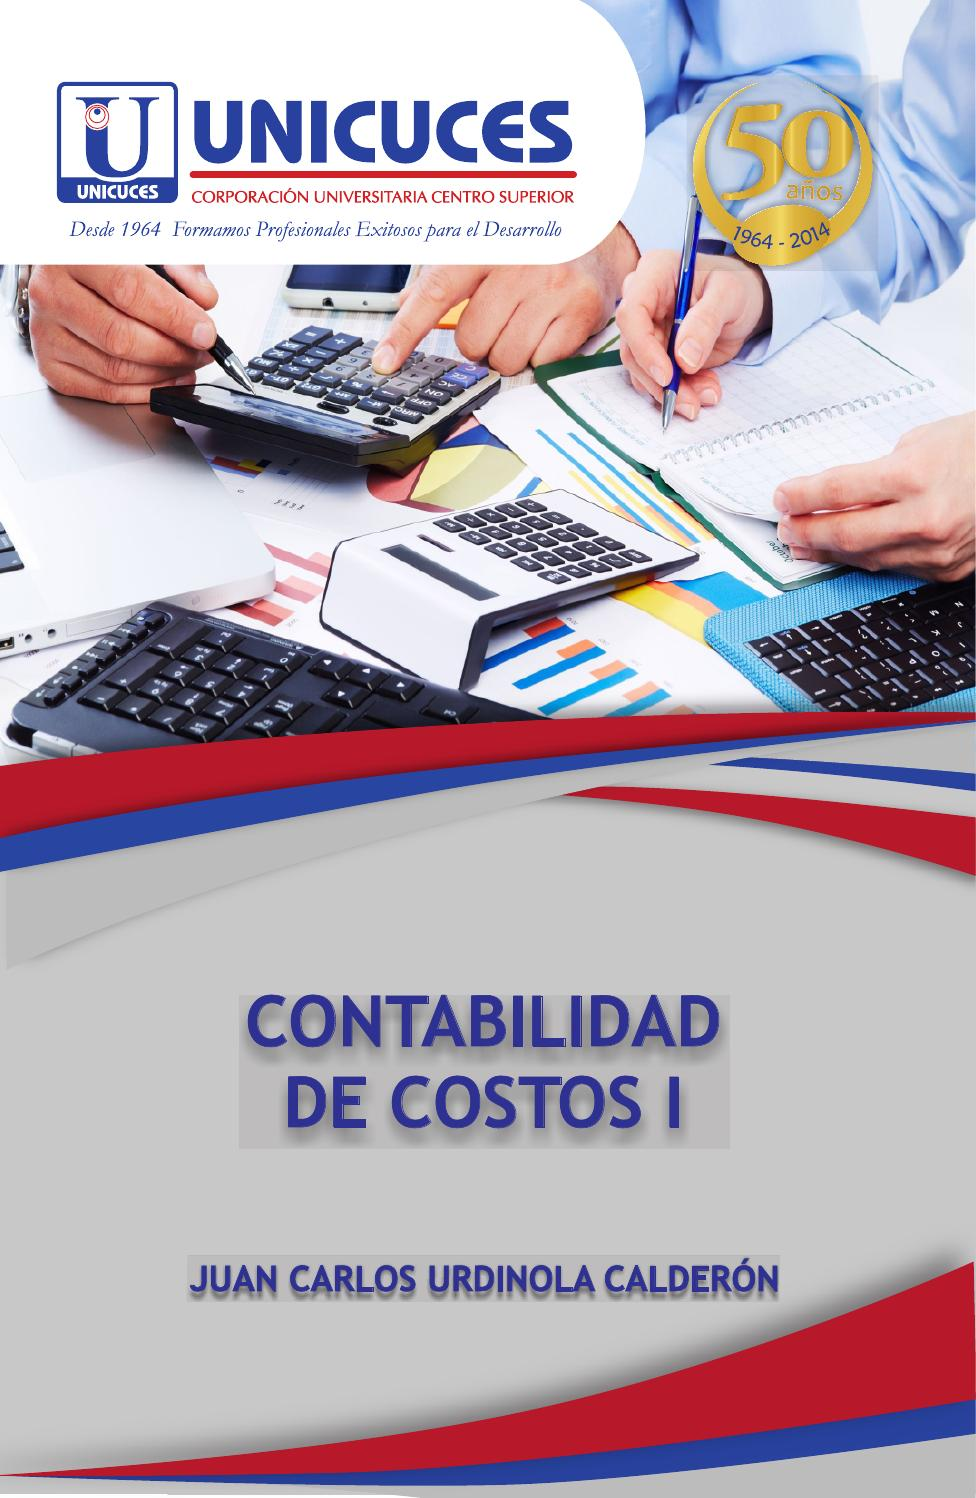 Contabilidad de costos i by UNICUCES - issuu